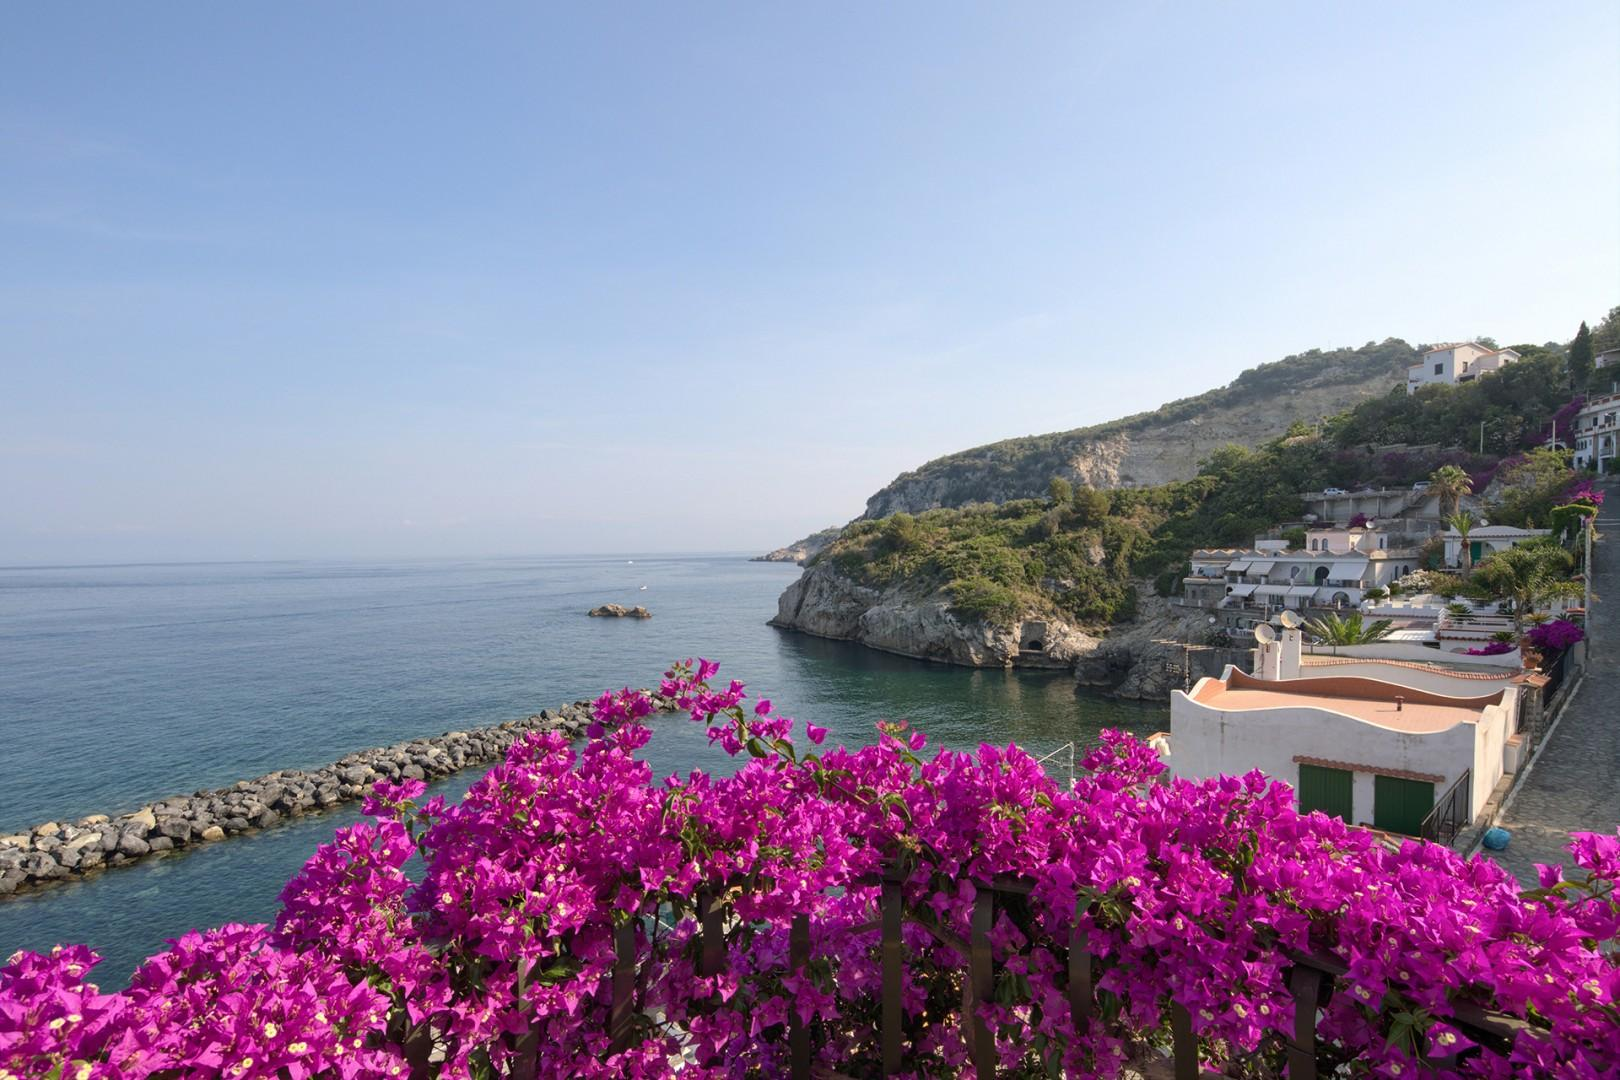 Bouganville with its purple flowers are found around the villa.